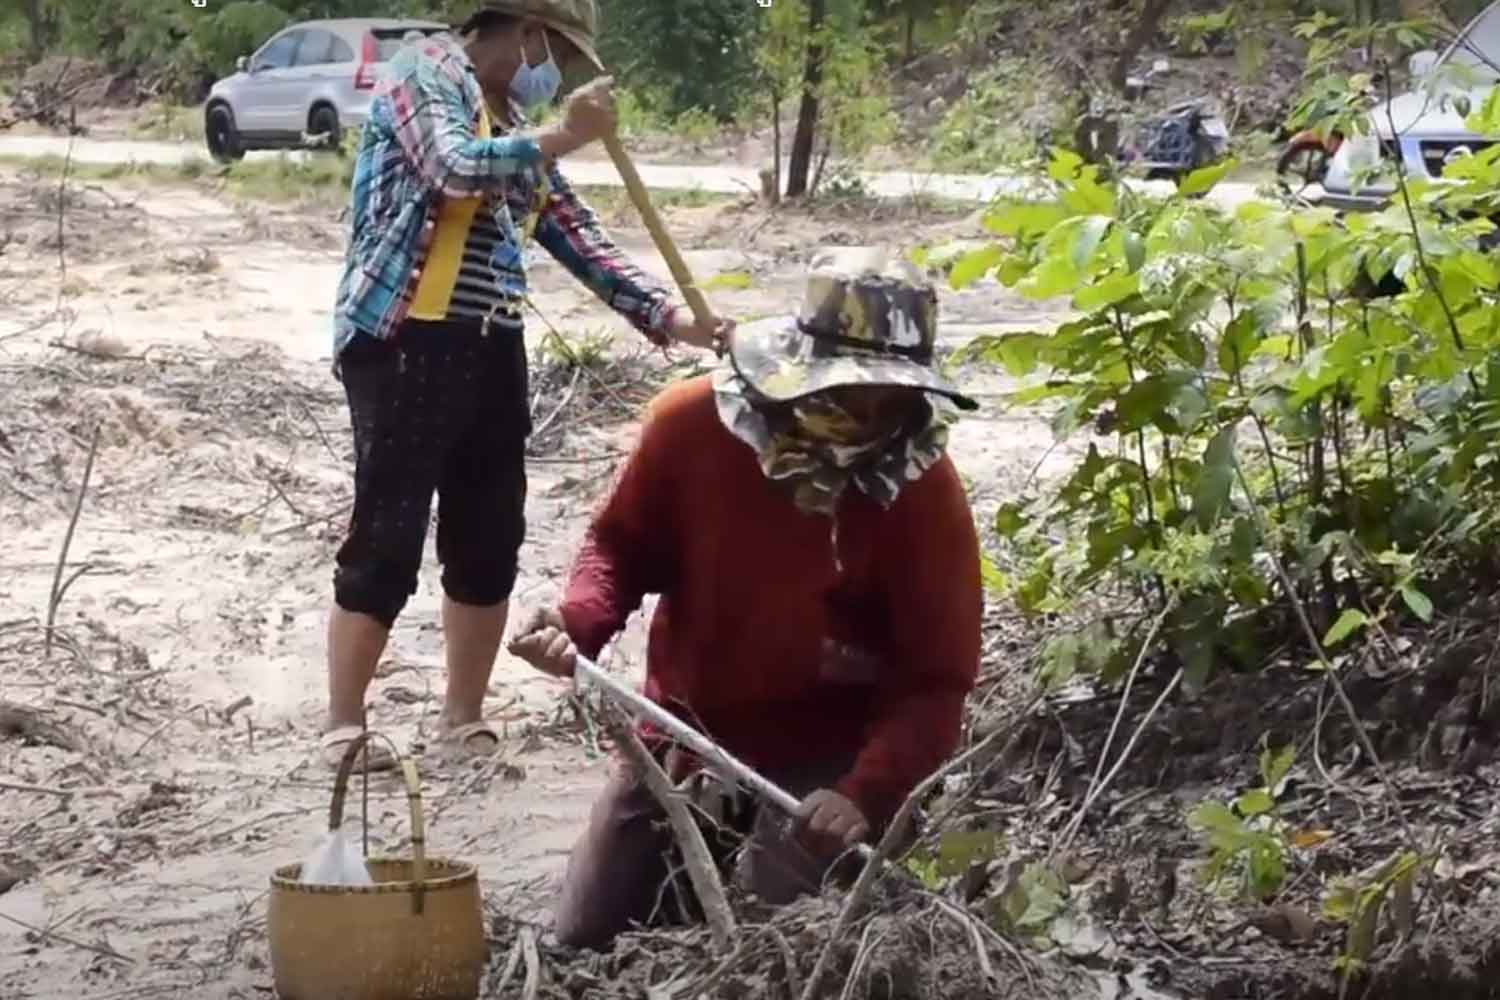 Part of the 300 rai in a forest reserve where glyphosate had been used to kill weeds and tree stumps in Khuang Nai district, Ubon Ratchathani. Villagers on Wednesday staged a protest against the use of the controversial herbicide. (Photo: Nila Singkiree)